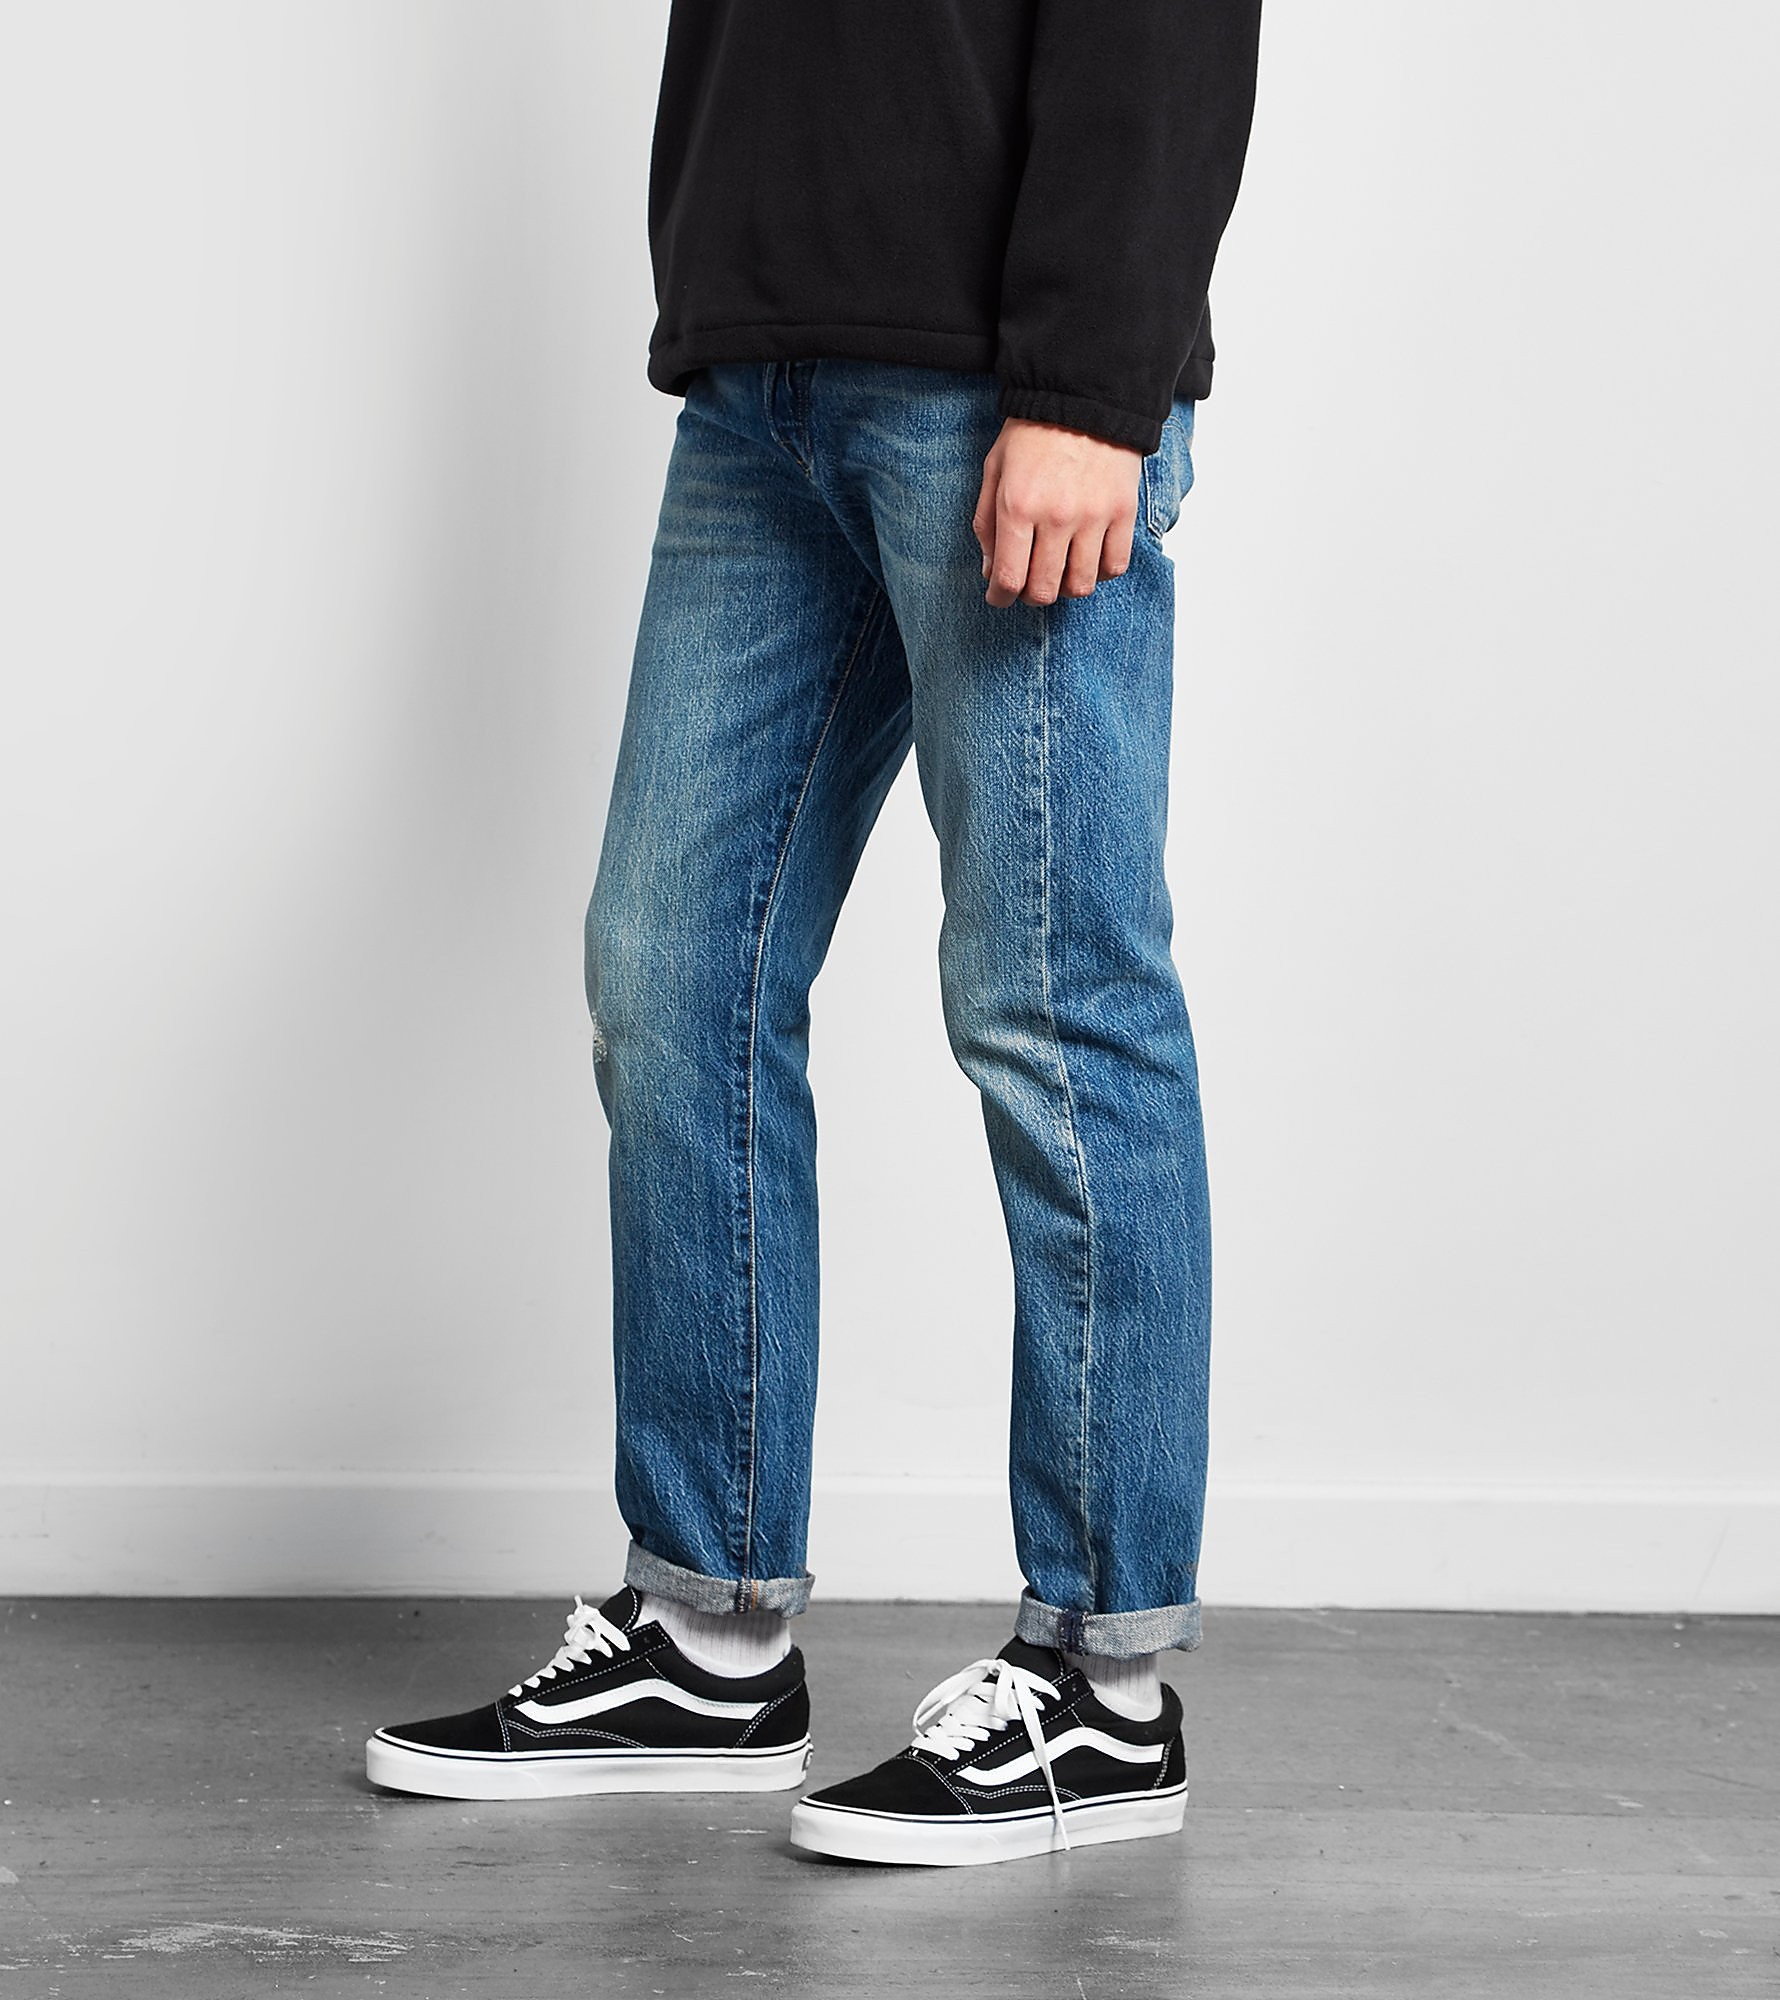 Levis 501 Tapered Spirit Jeans